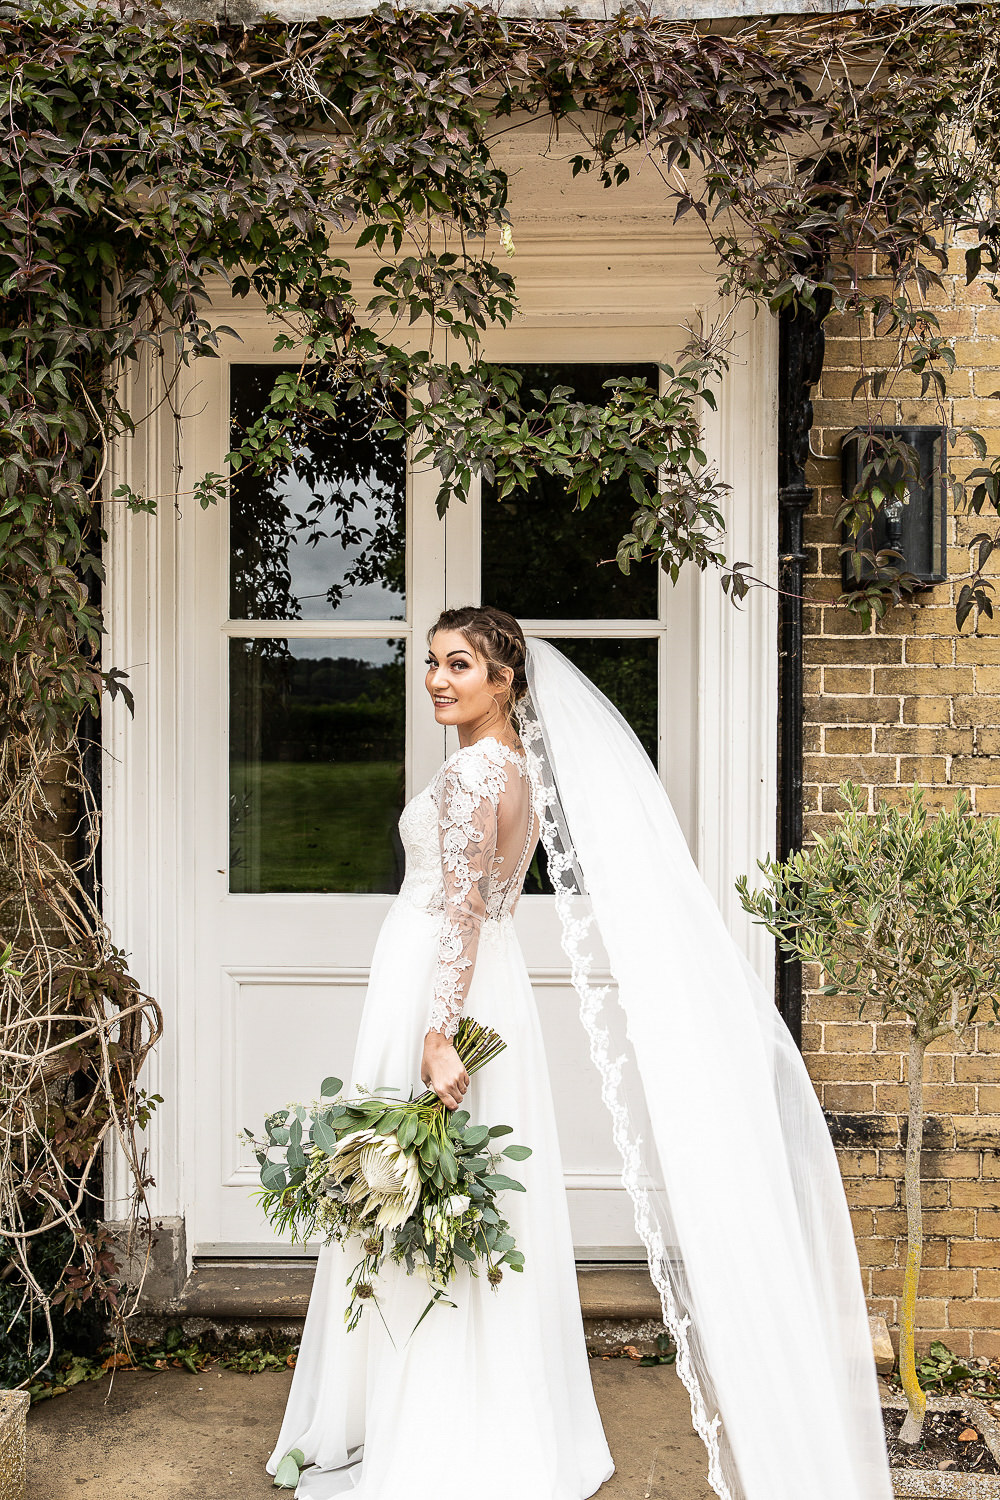 Bride Bridal Dress Gown Lace Veil Sleeves Lillian West Rustic Botanical Barn Wedding Lorna Newman Photography